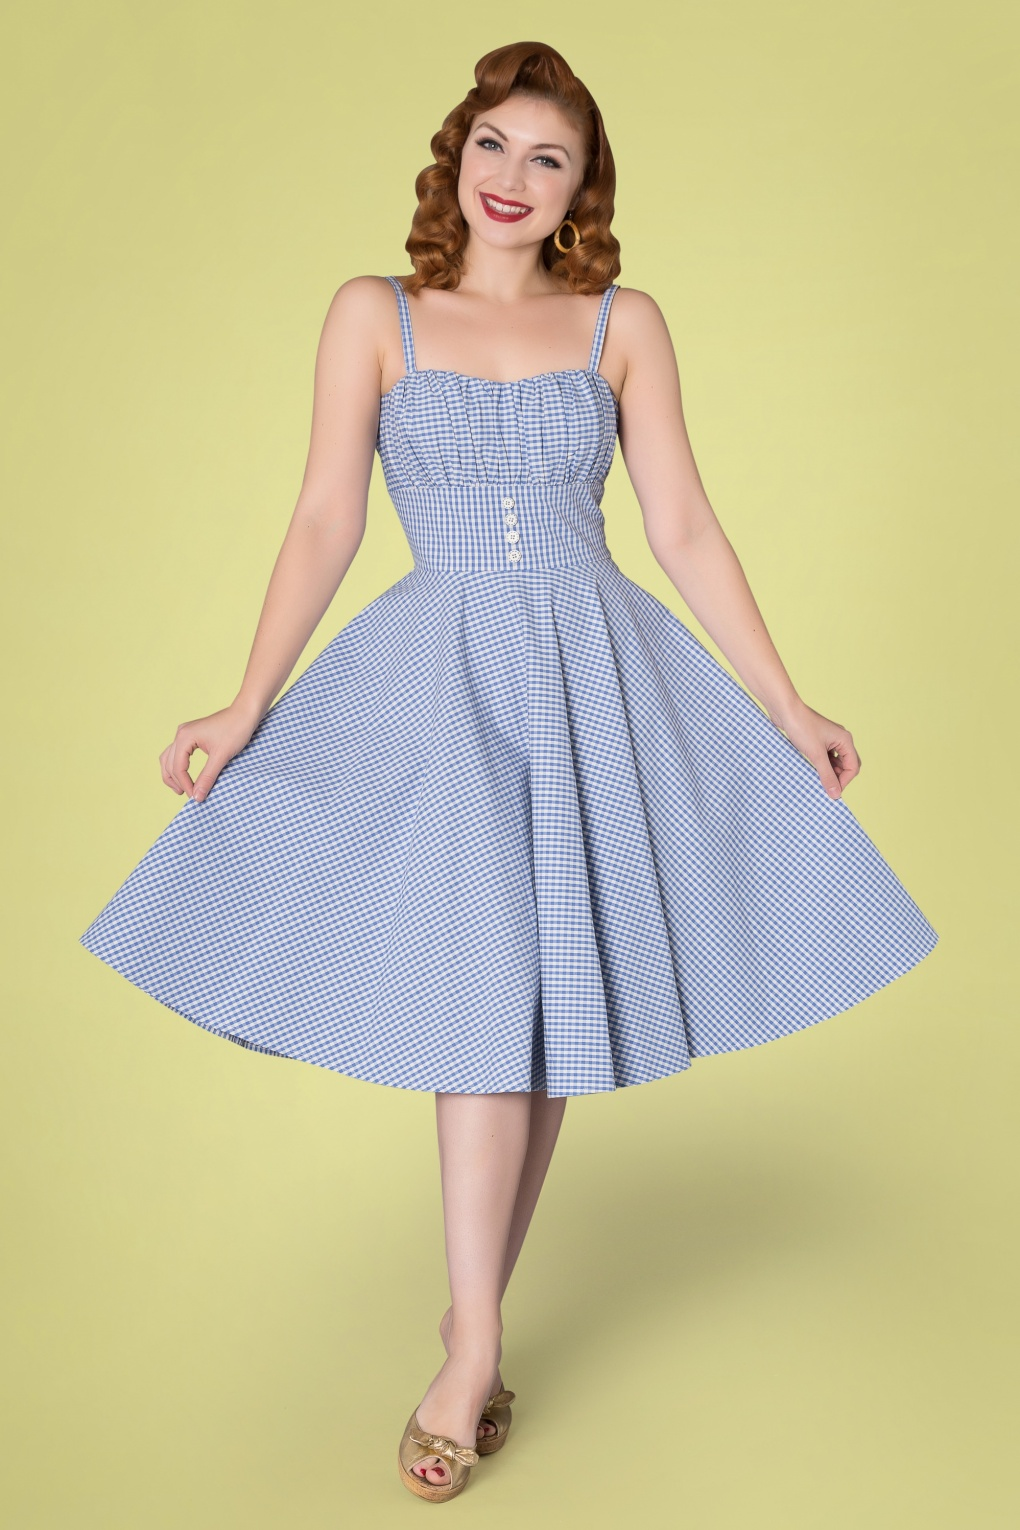 1950s Inspired Fashion: Recreate the Look 50s Melissendre Gingham Swing Dress in Blue and White £58.73 AT vintagedancer.com